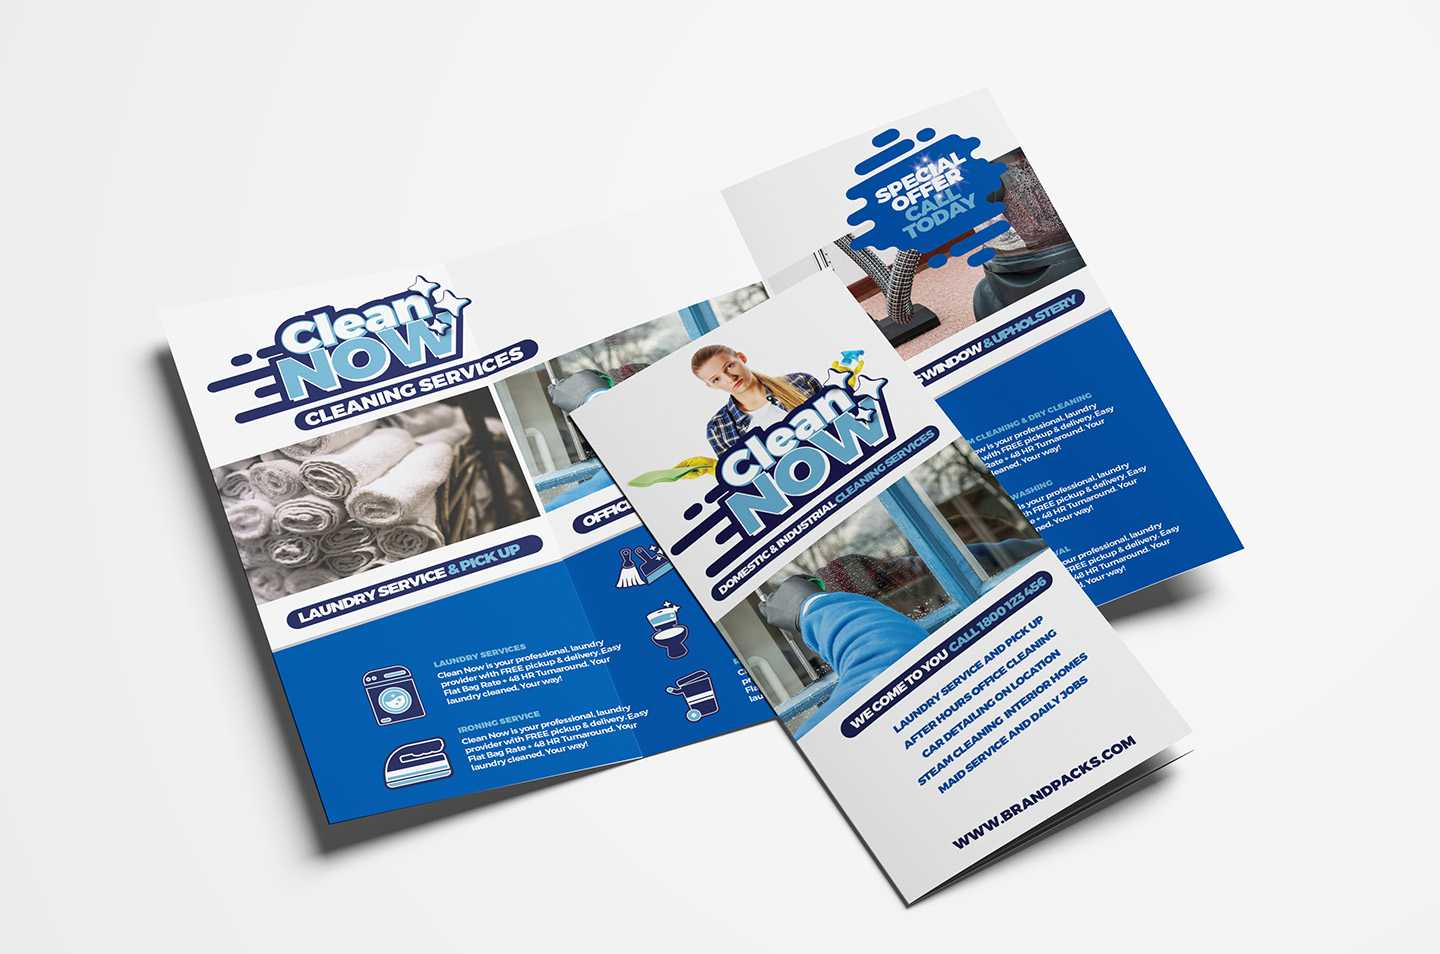 Cleaning Service Trifold Brochure Template In Psd, Ai For Commercial Cleaning Brochure Templates